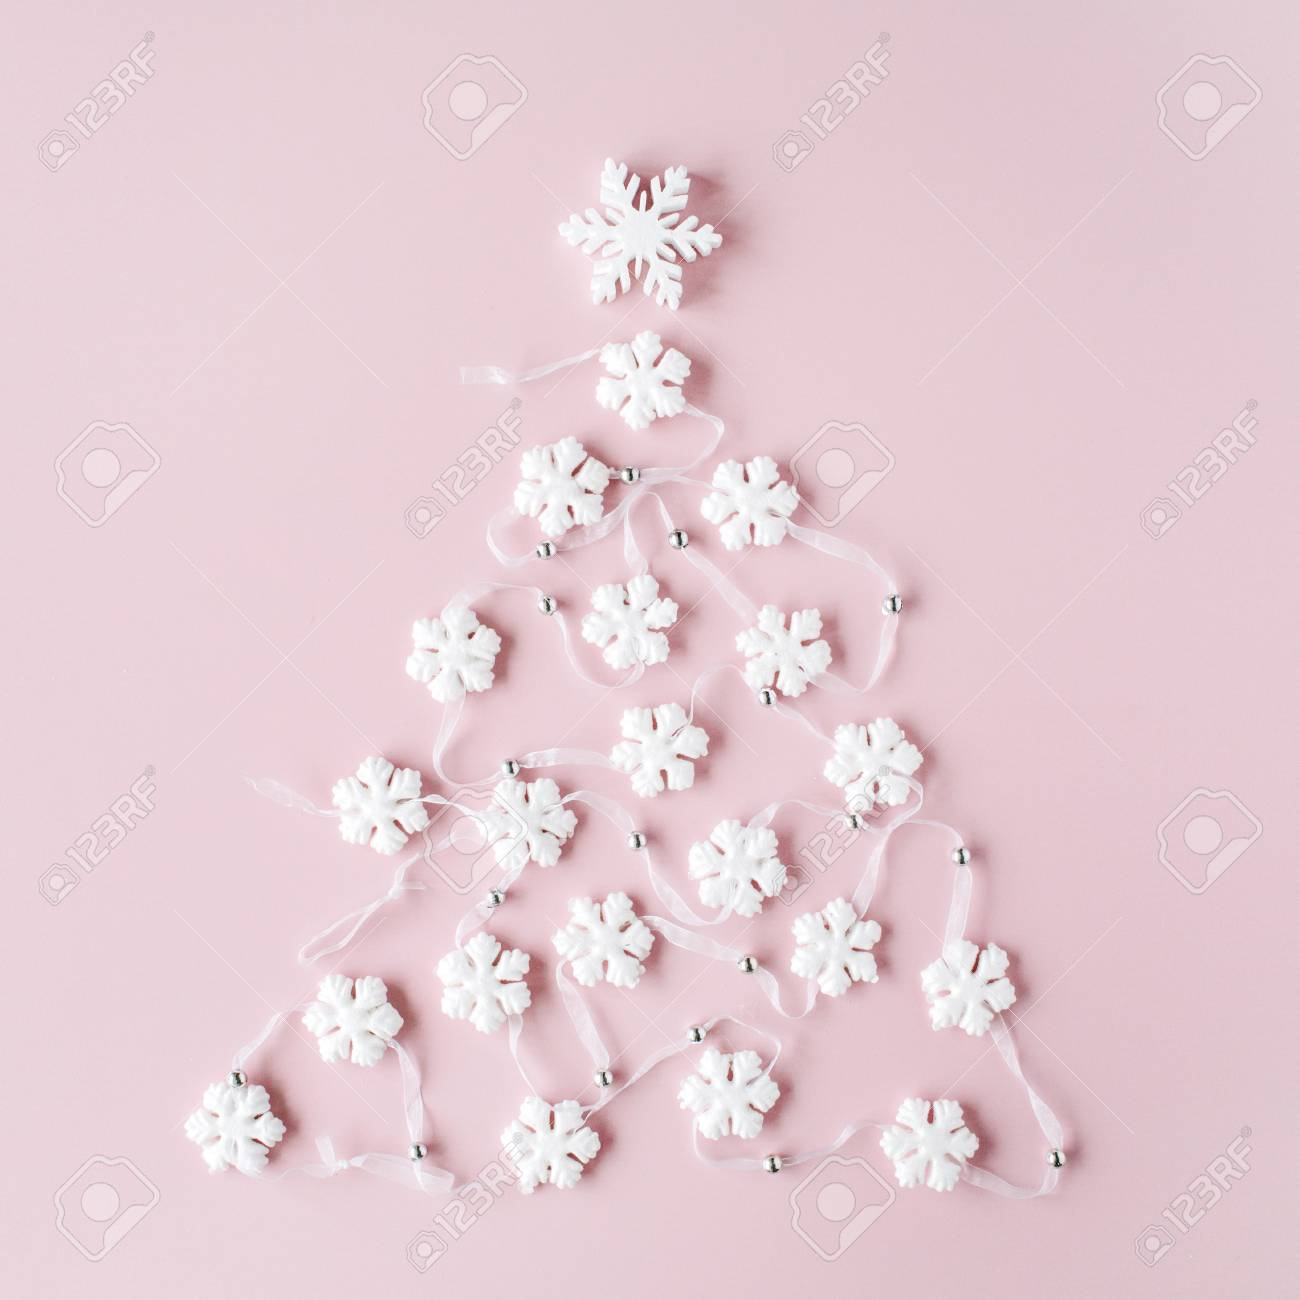 white christmas tree decoration on pink background christmas stock photo picture and royalty free image image 67721025 white christmas tree decoration on pink background christmas